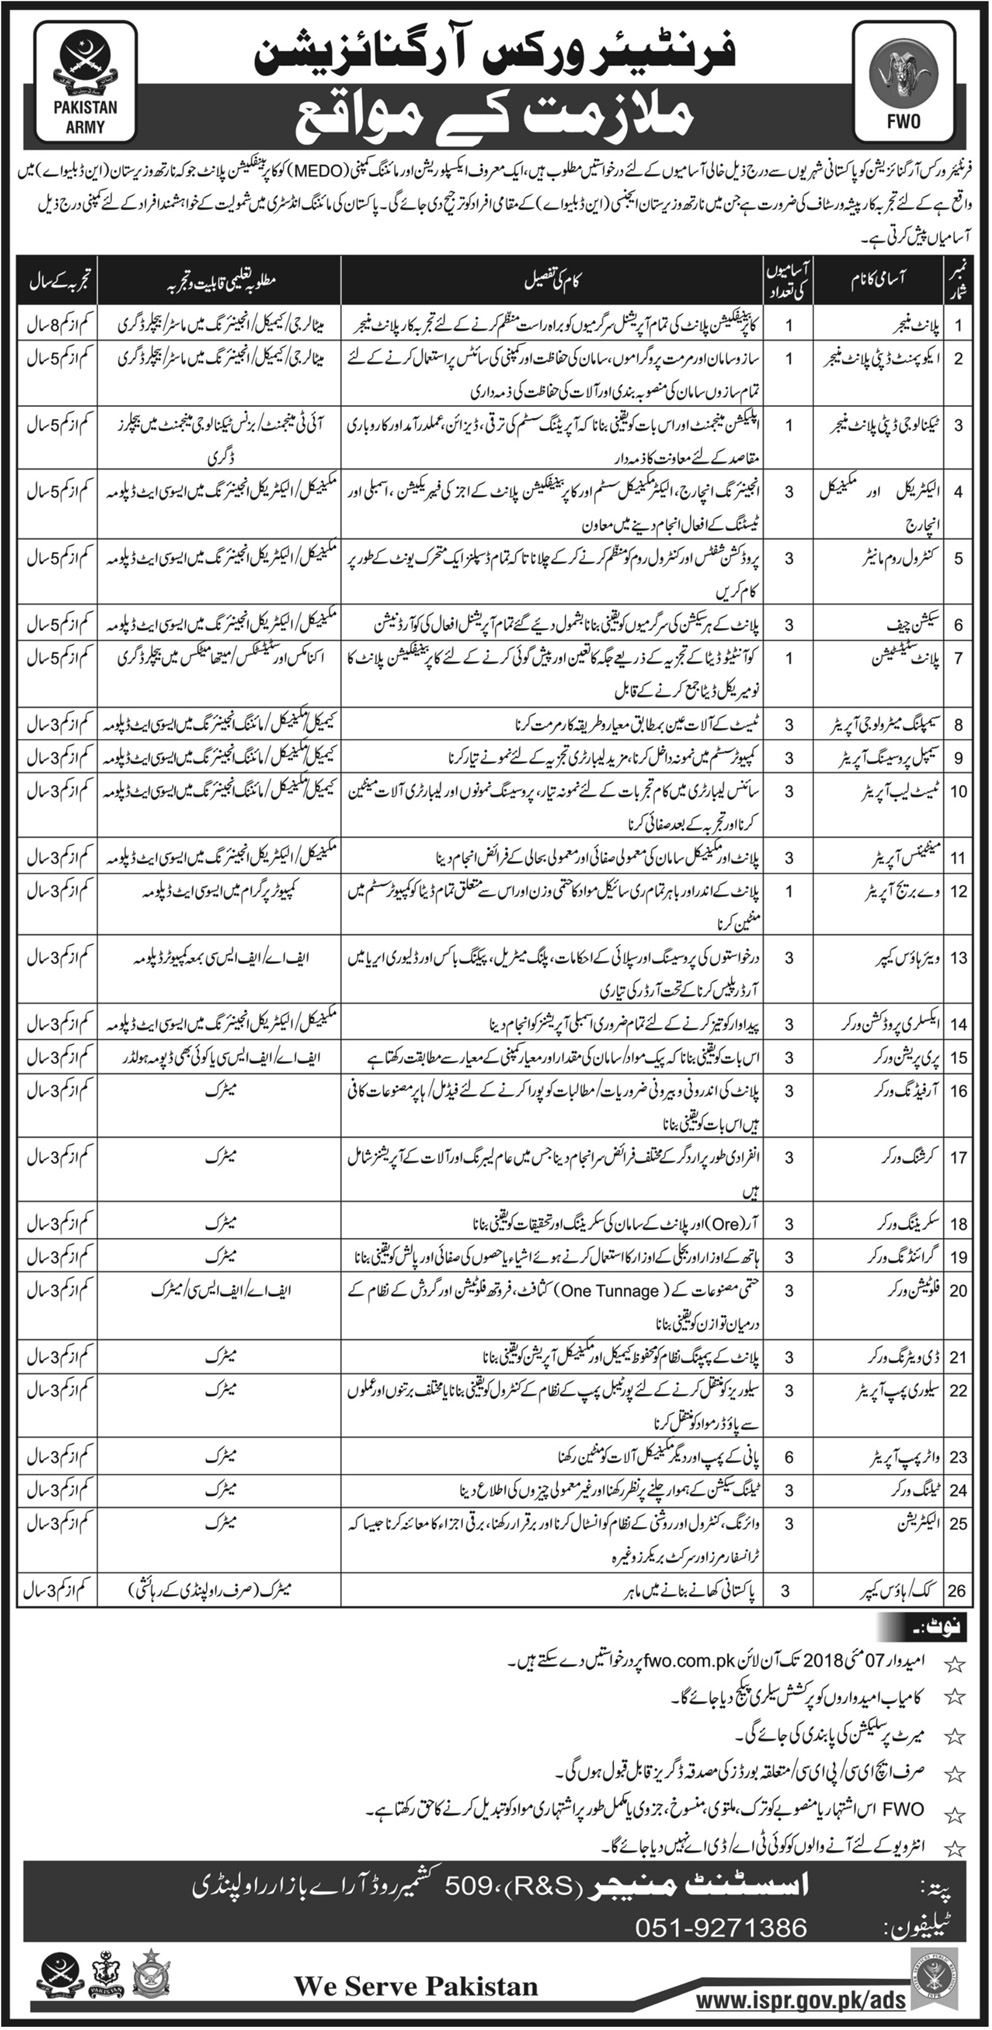 Jobs in Frontier Works Organization Pak Army 22 April 2018